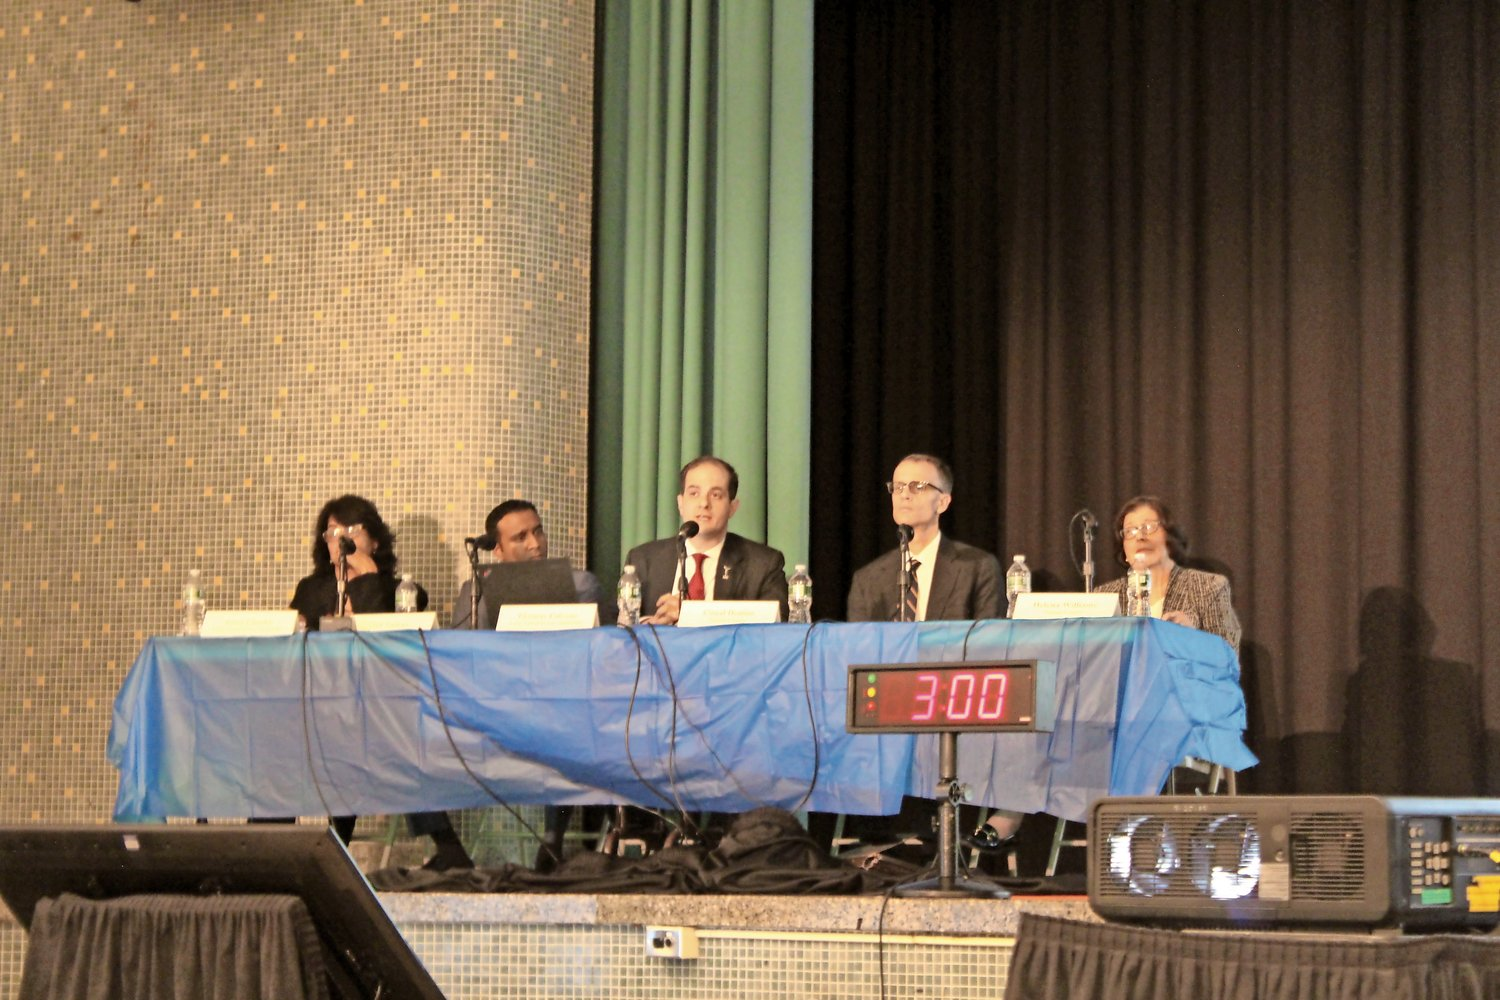 The panel of LIPA and county officials, top, comprised, from left, Anna Chacko, general counsel of LIPA; Sid Nathan, the utility's communications director; Tom Falcone, its CEO; Conal Denion, of the Nassau County attorney's office; and Helena Williams, chief deputy county executive.